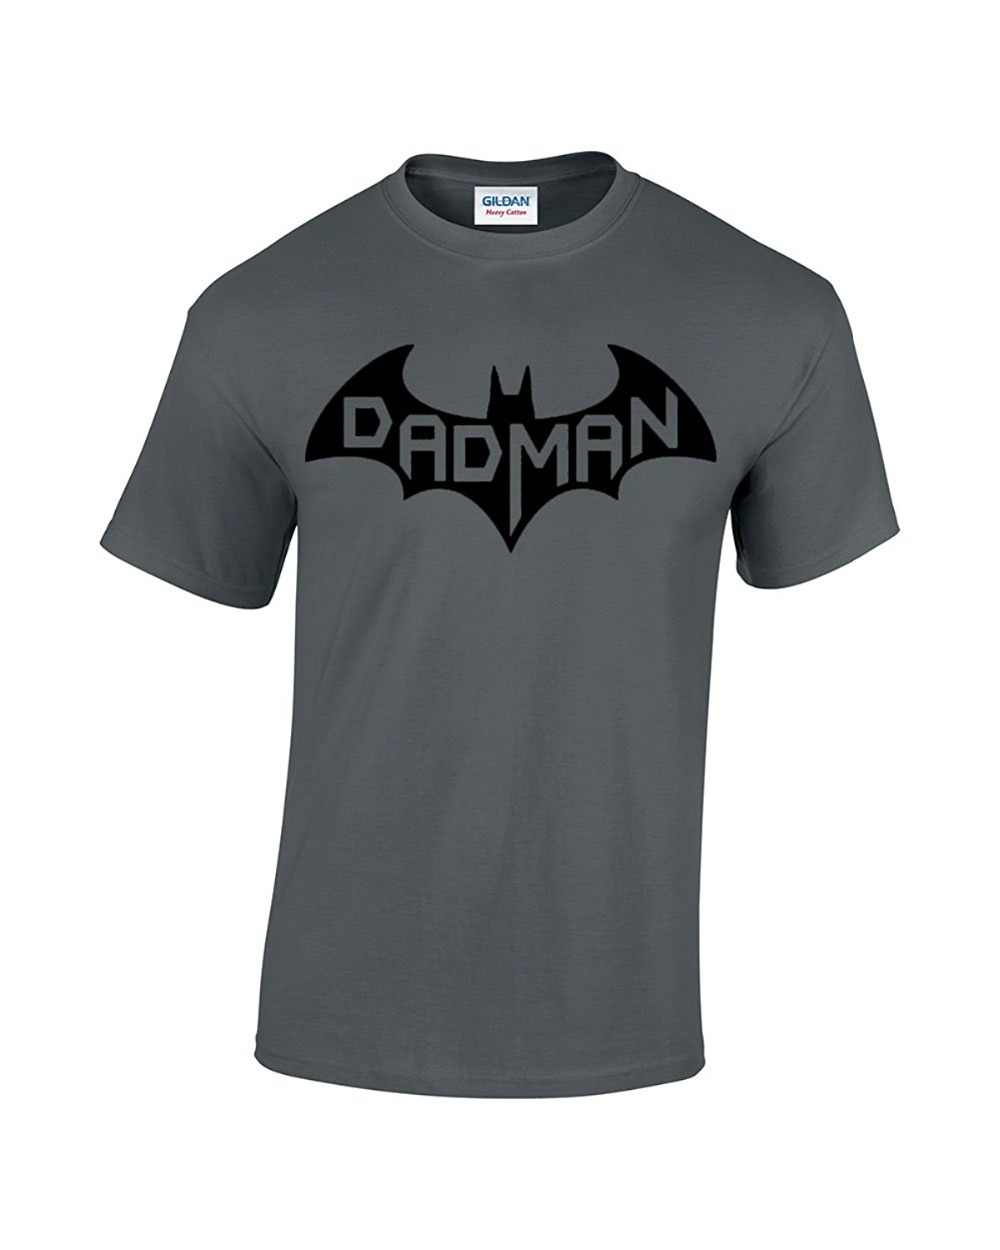 2018 Beste T-shirts Dadman-Super Dadman Bat Hero Grappige Premium mannen T-Shirt Hiphop Tops Tees